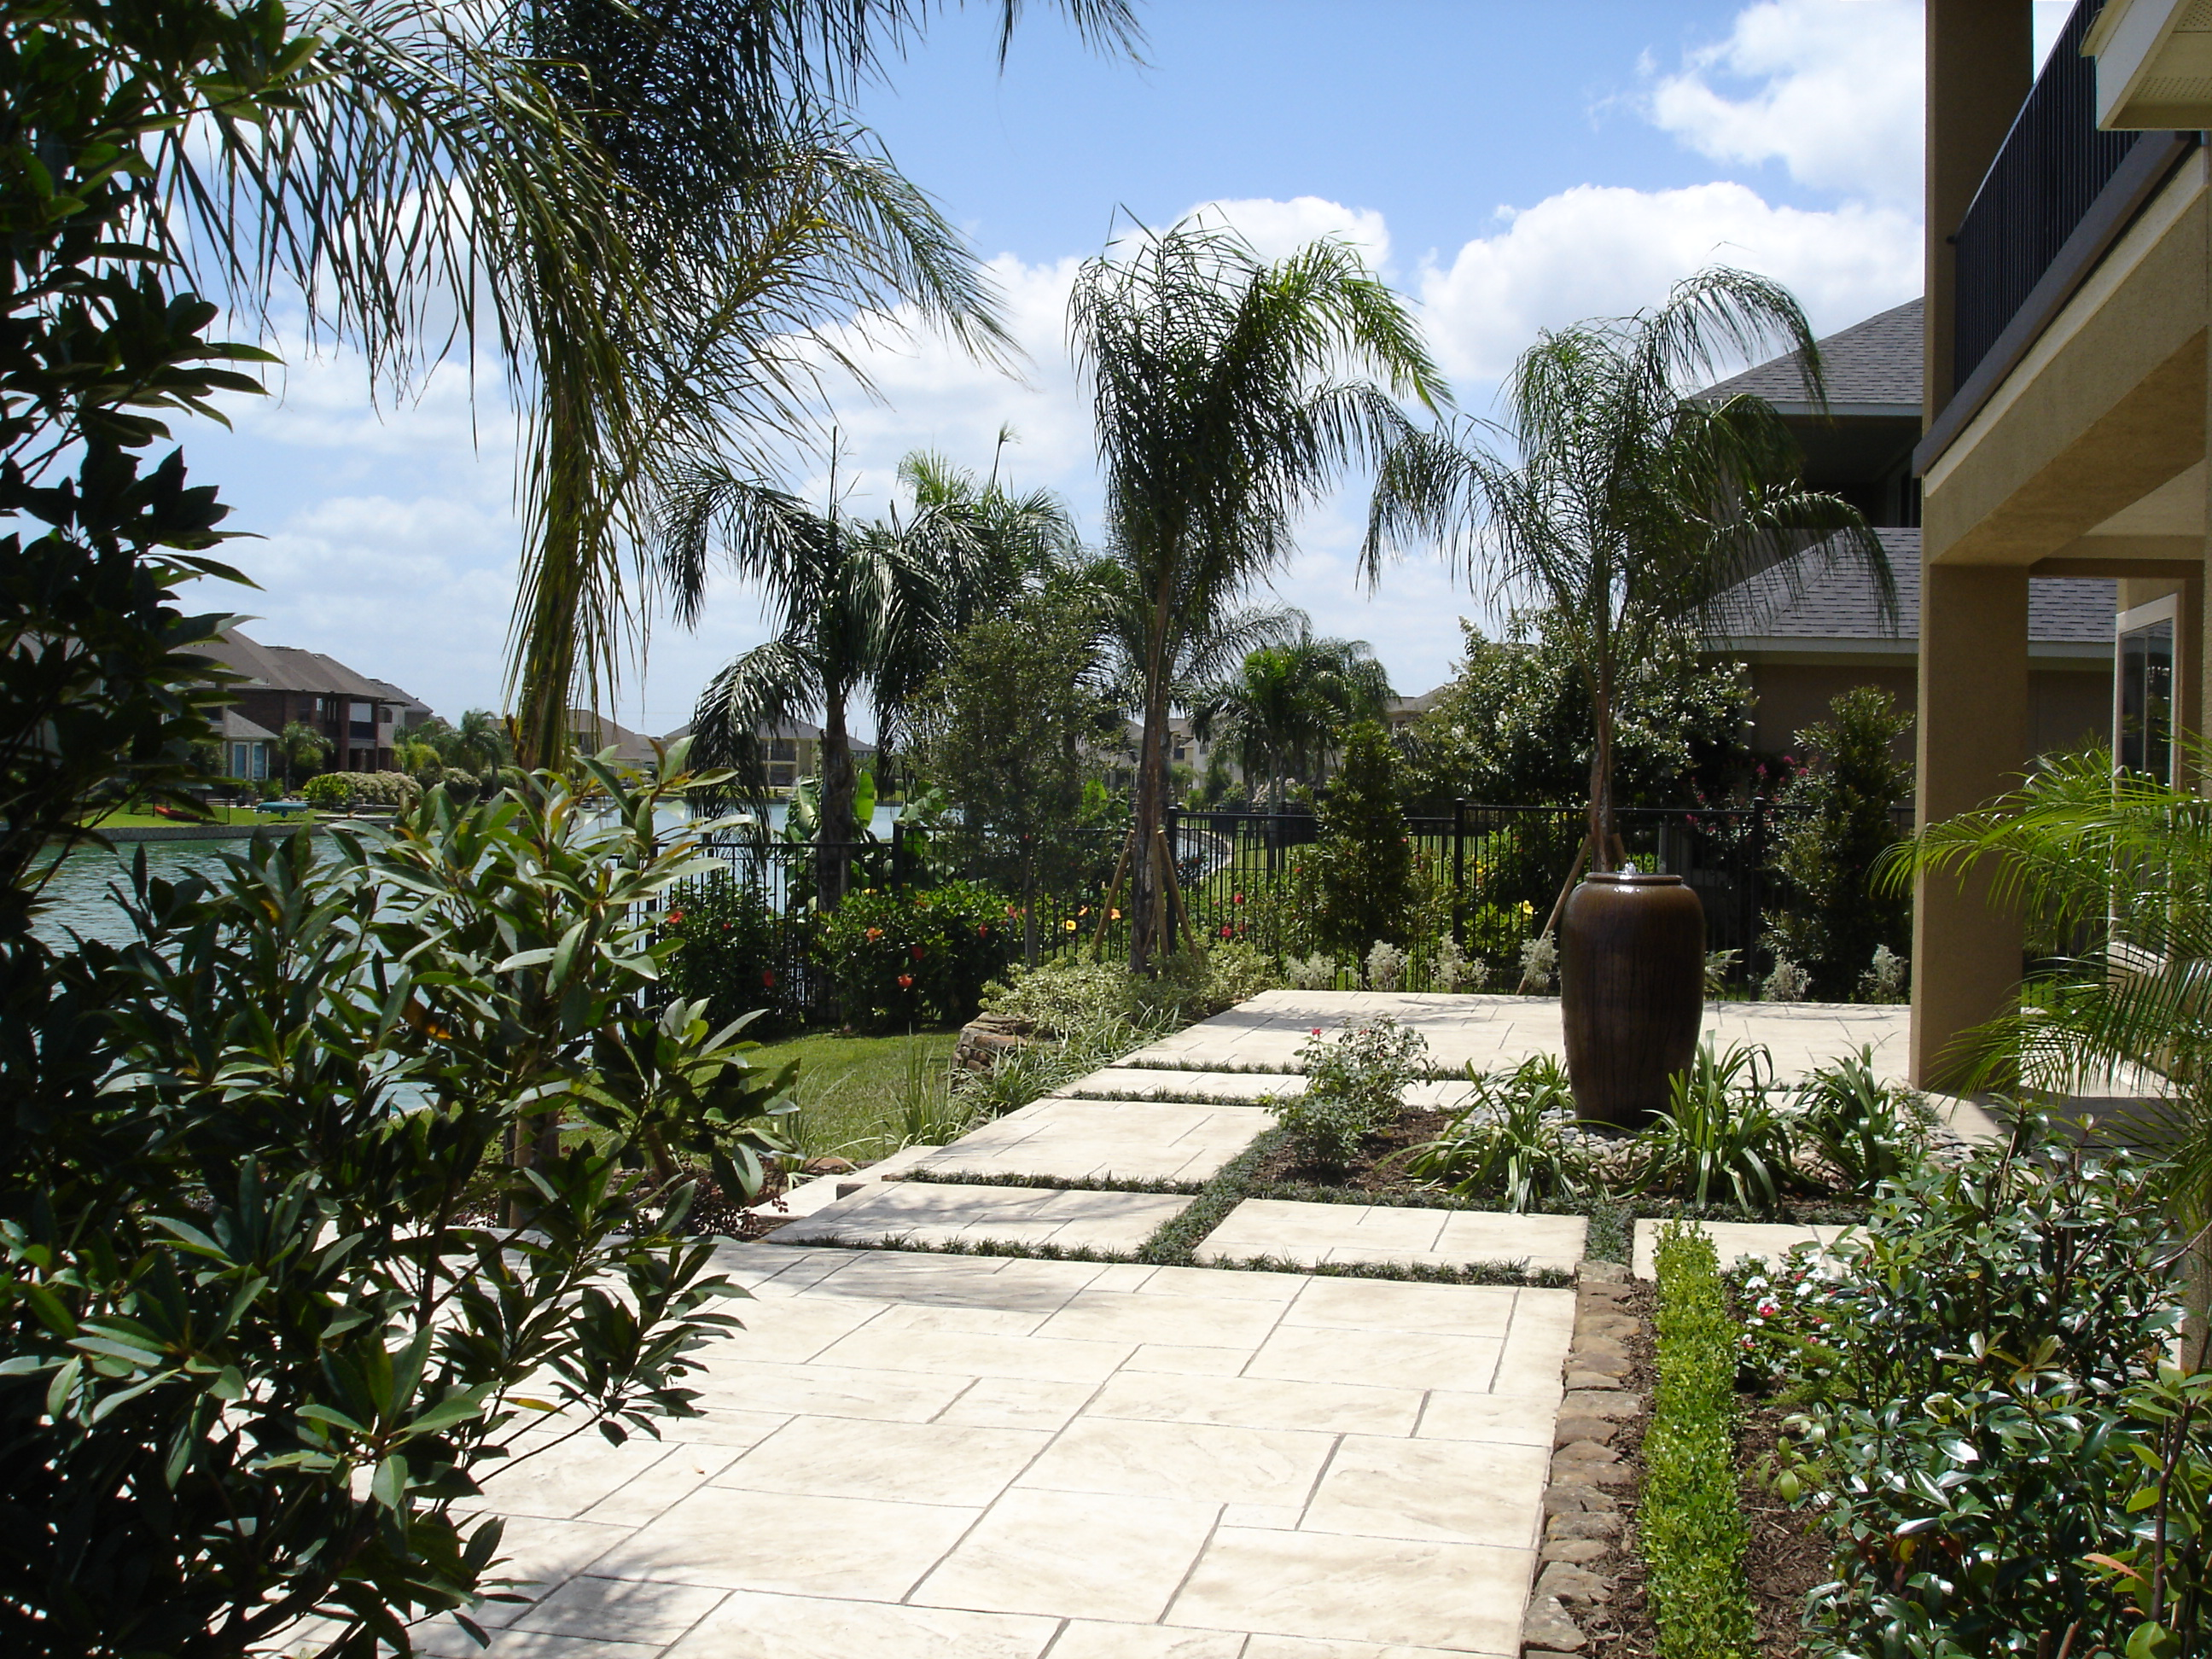 landscaping_37